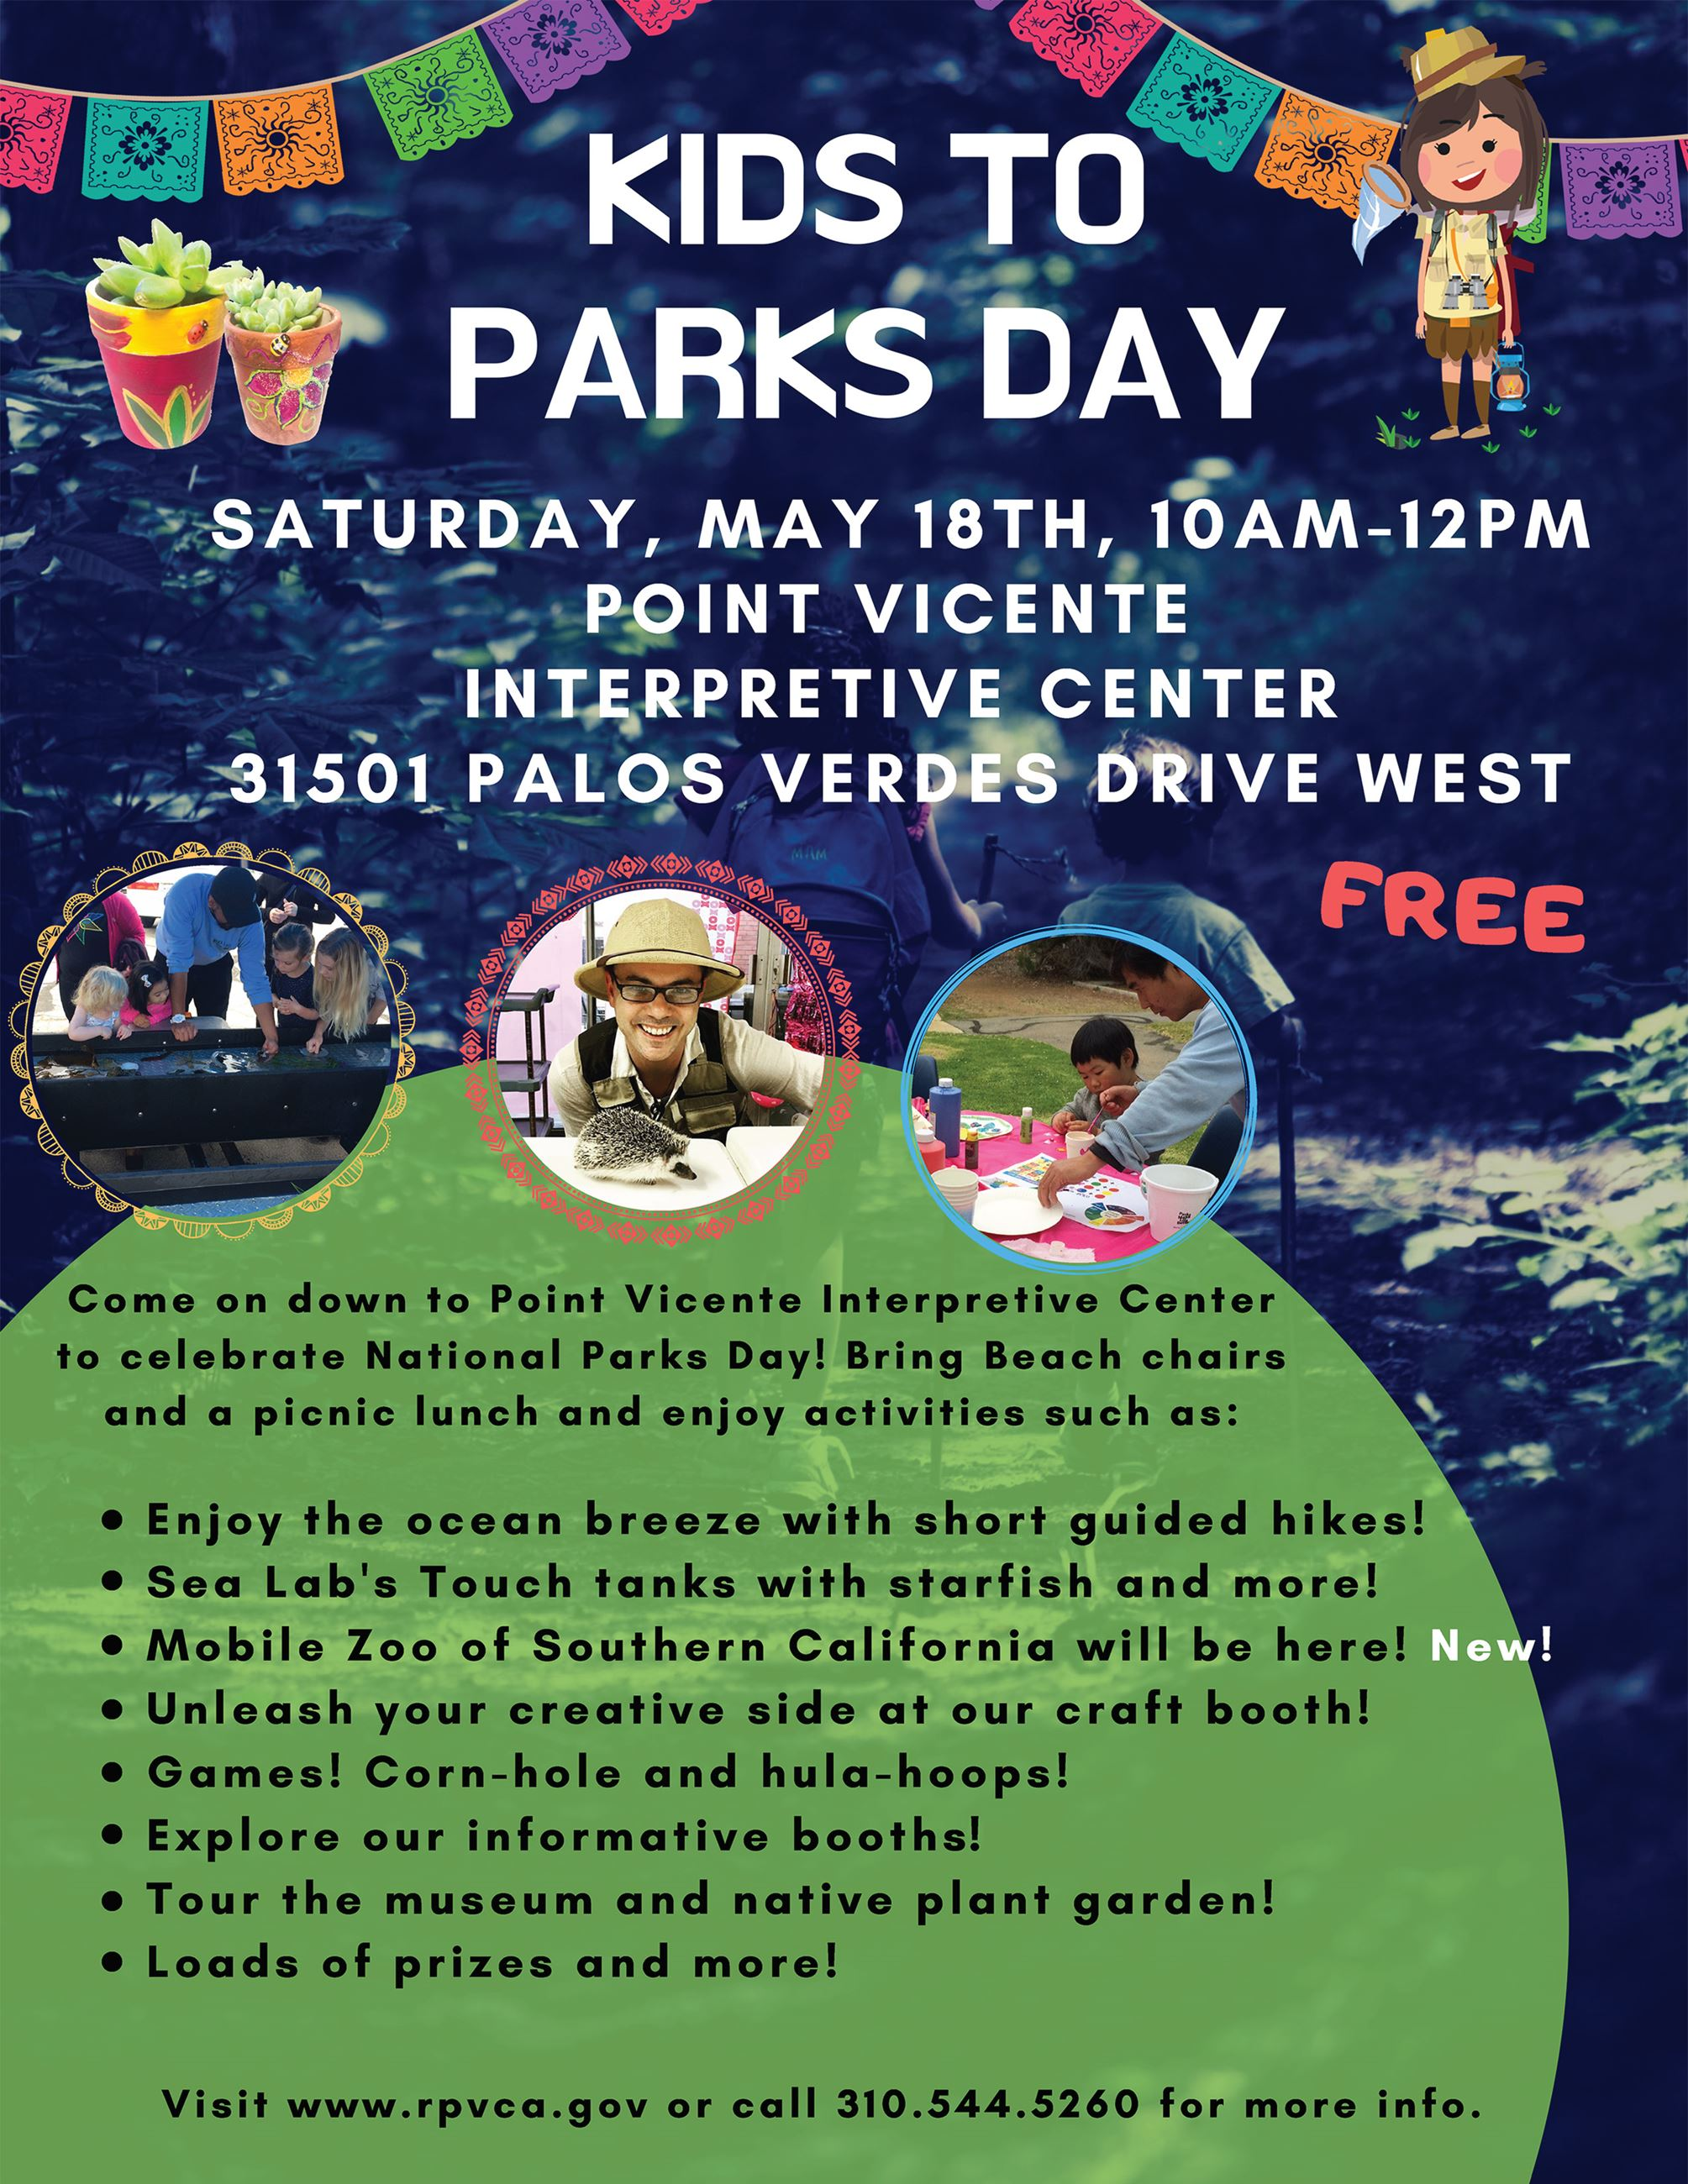 Kids to Parks Day 2019 Flyer